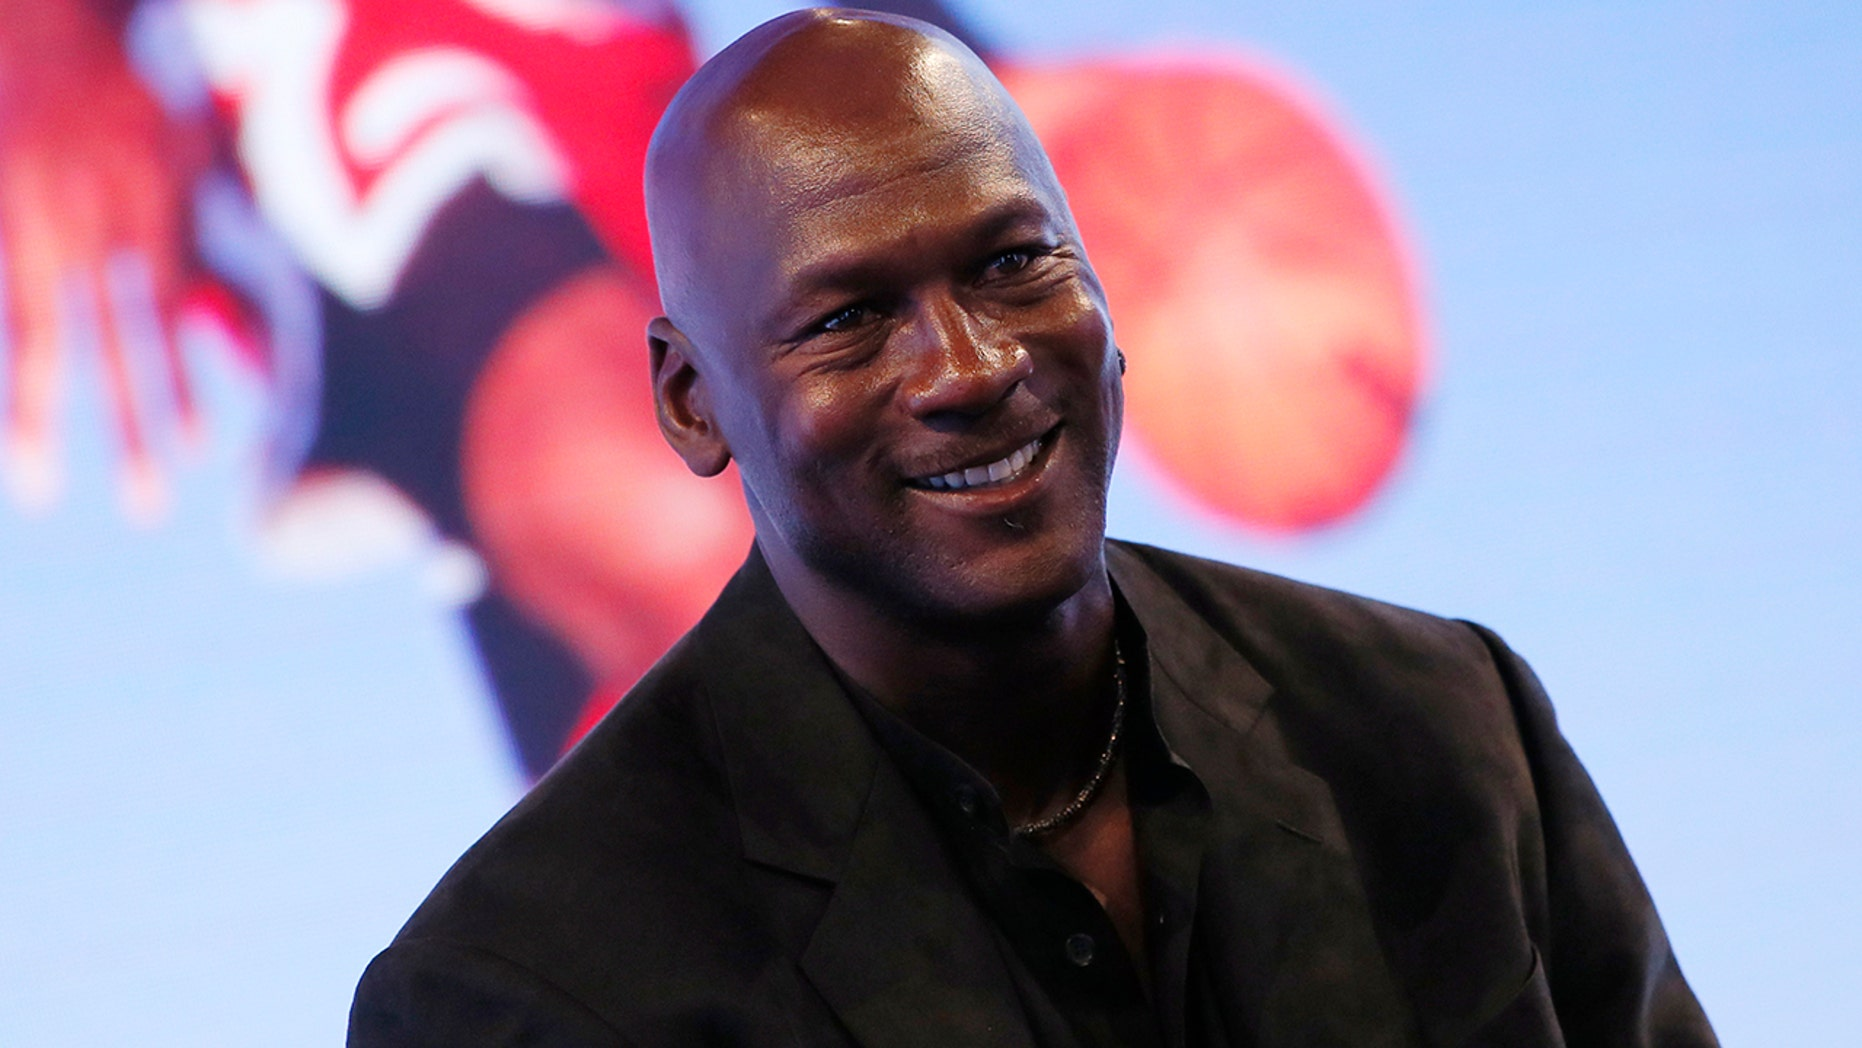 Former basketball great Michael Jordan attends a party celebrating the 30th anniversary of the Air Jordan shoe line in Paris, June 12, 2015.